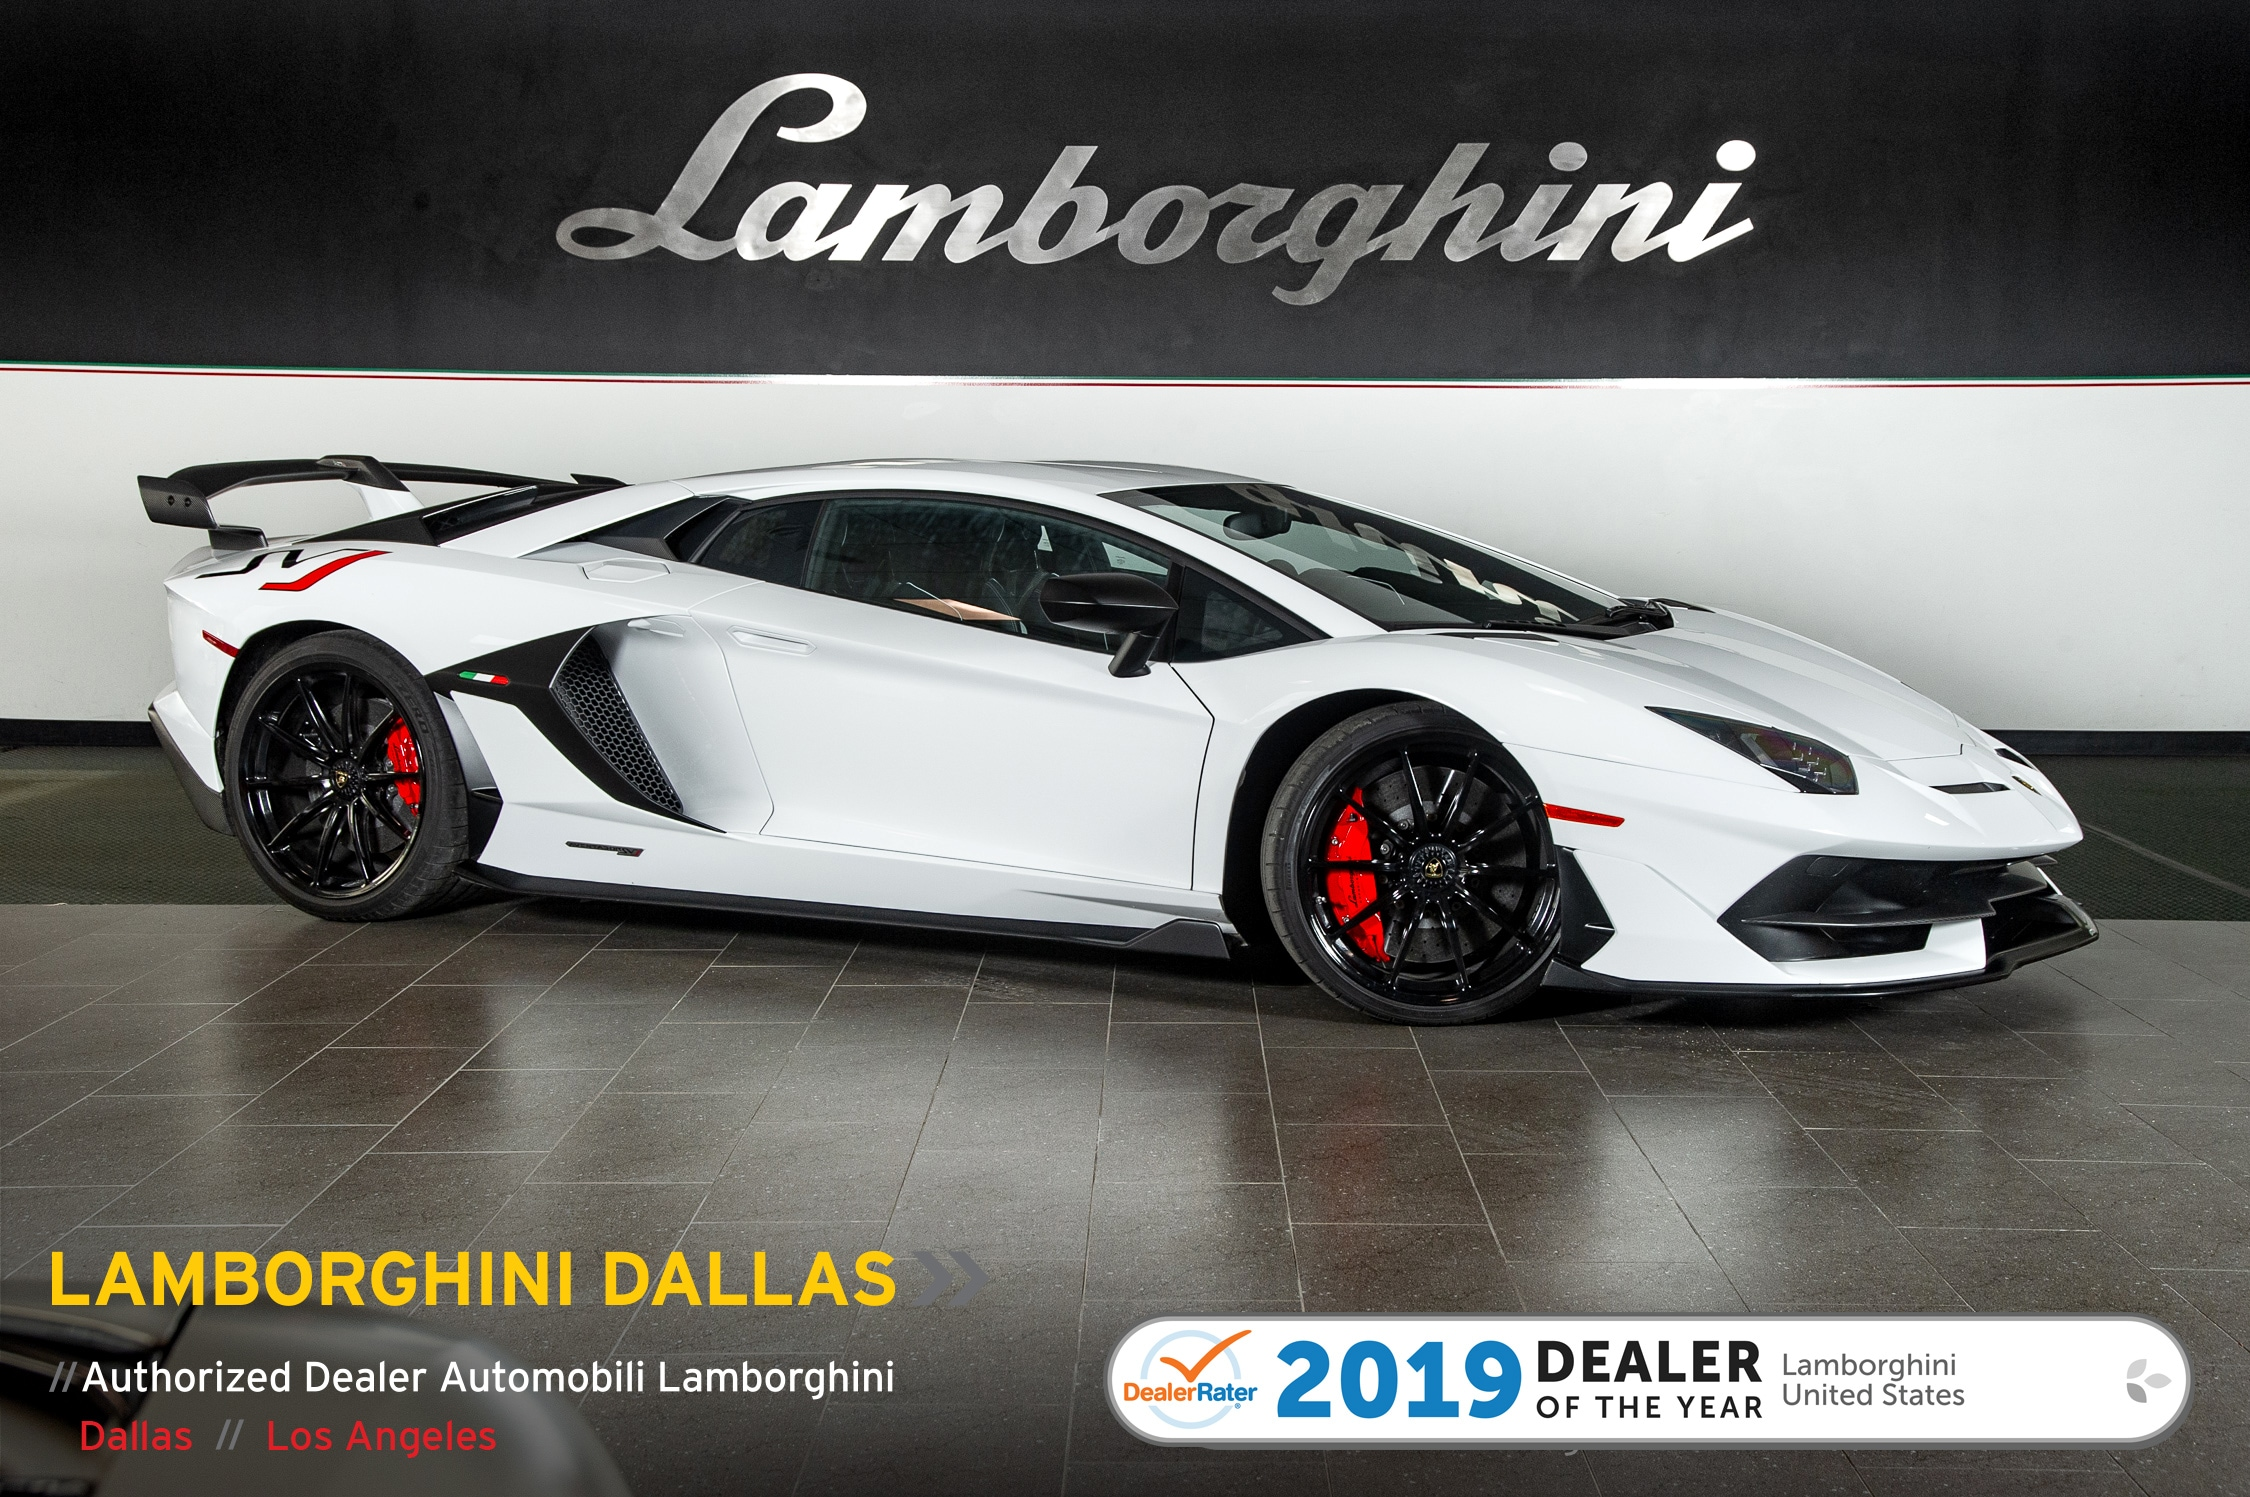 used 2019 lamborghini aventador svj for sale richardson tx stock lt1295 vin zhwum6zd9kla08754 used 2019 lamborghini aventador svj for sale richardson tx stock lt1295 vin zhwum6zd9kla08754